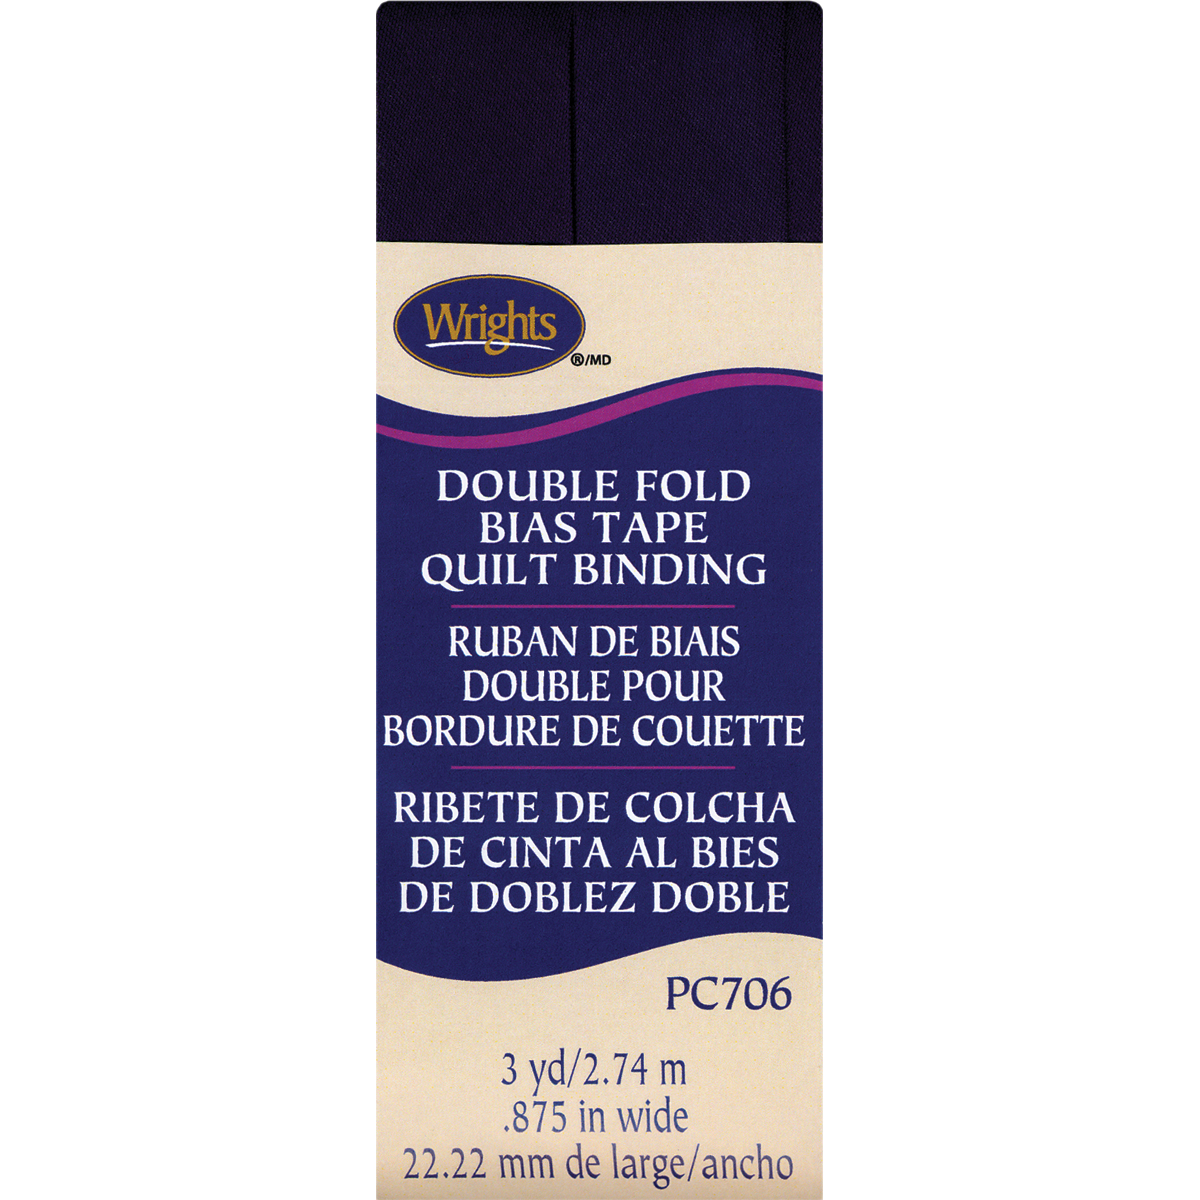 Wrights Double Fold Quilt Binding, 7/8 by 3-Yard, Blackberry Multi-Colored